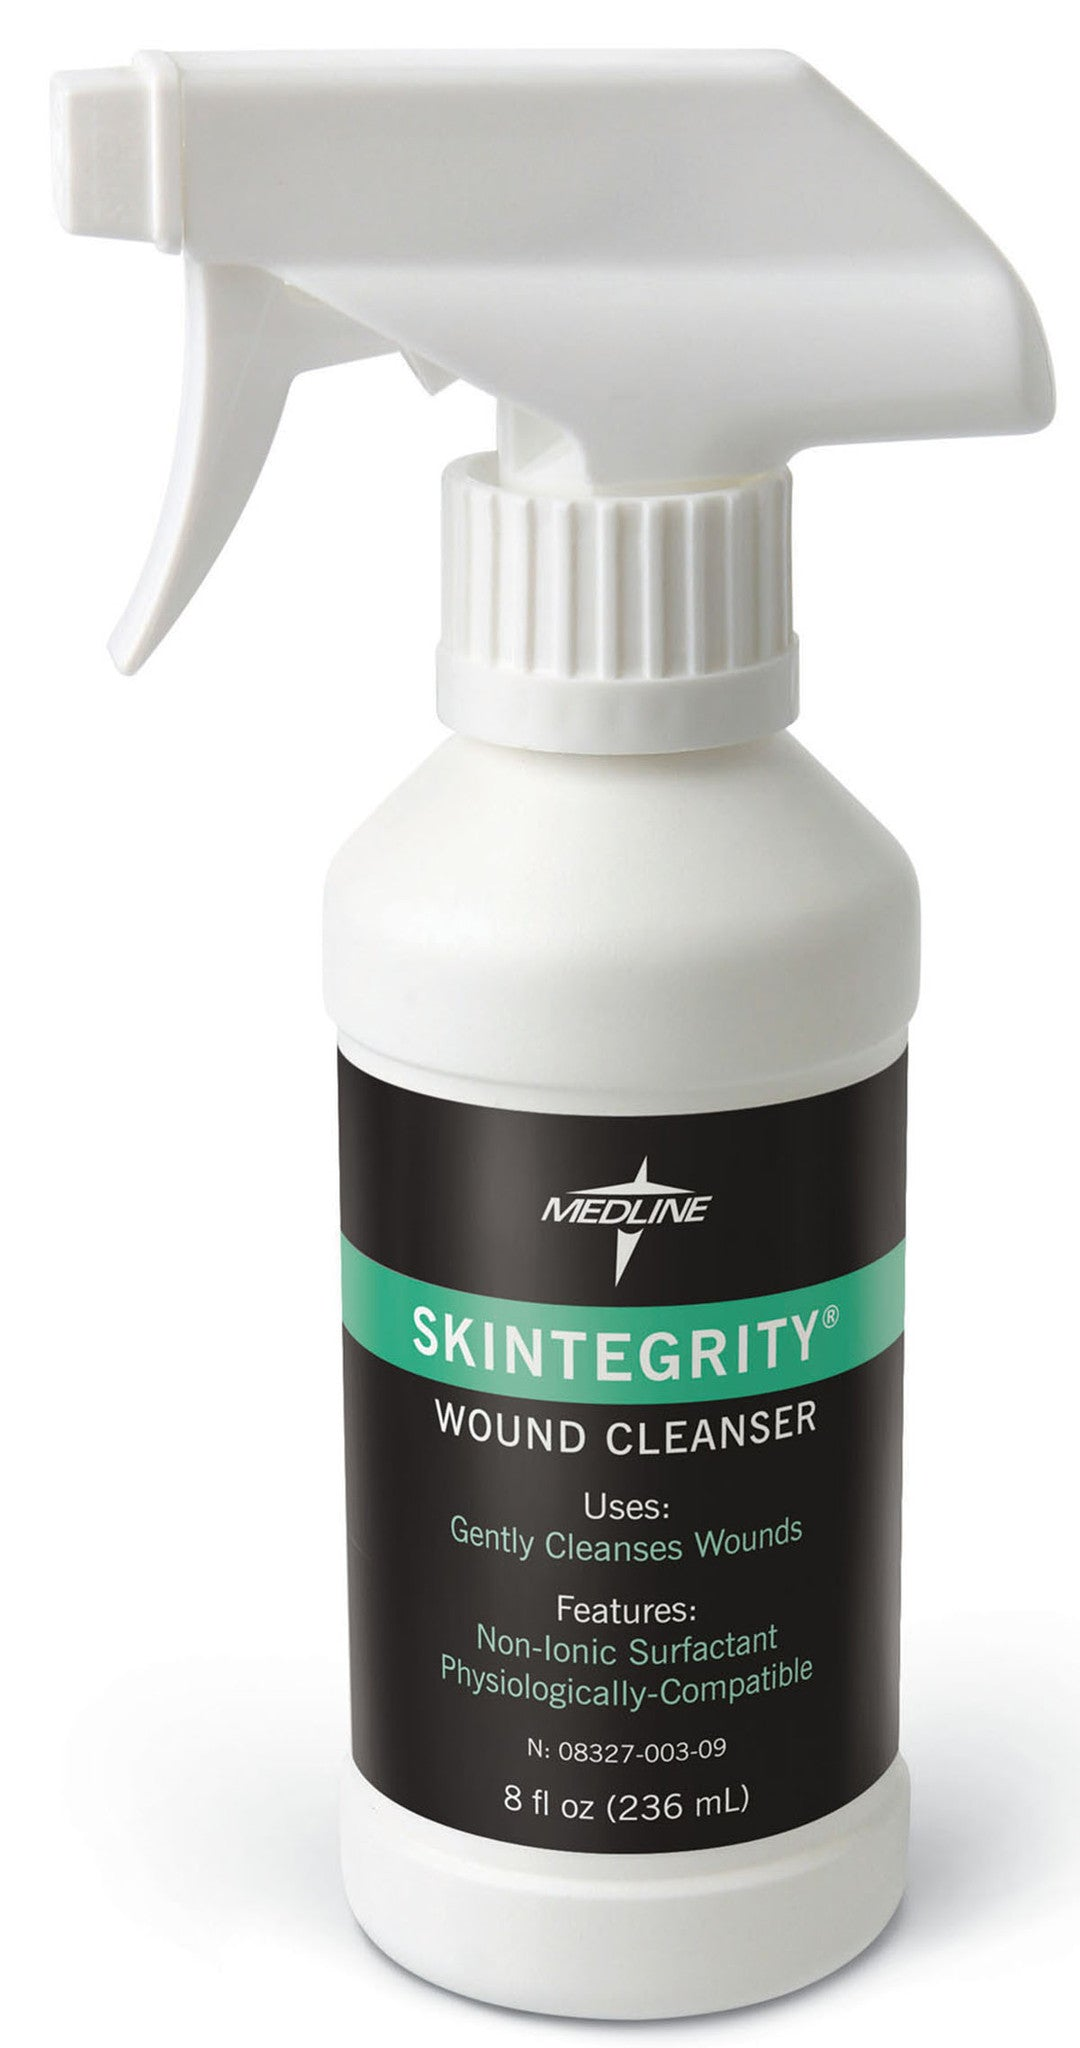 Skintegrity™ Wound Cleanser by Medline